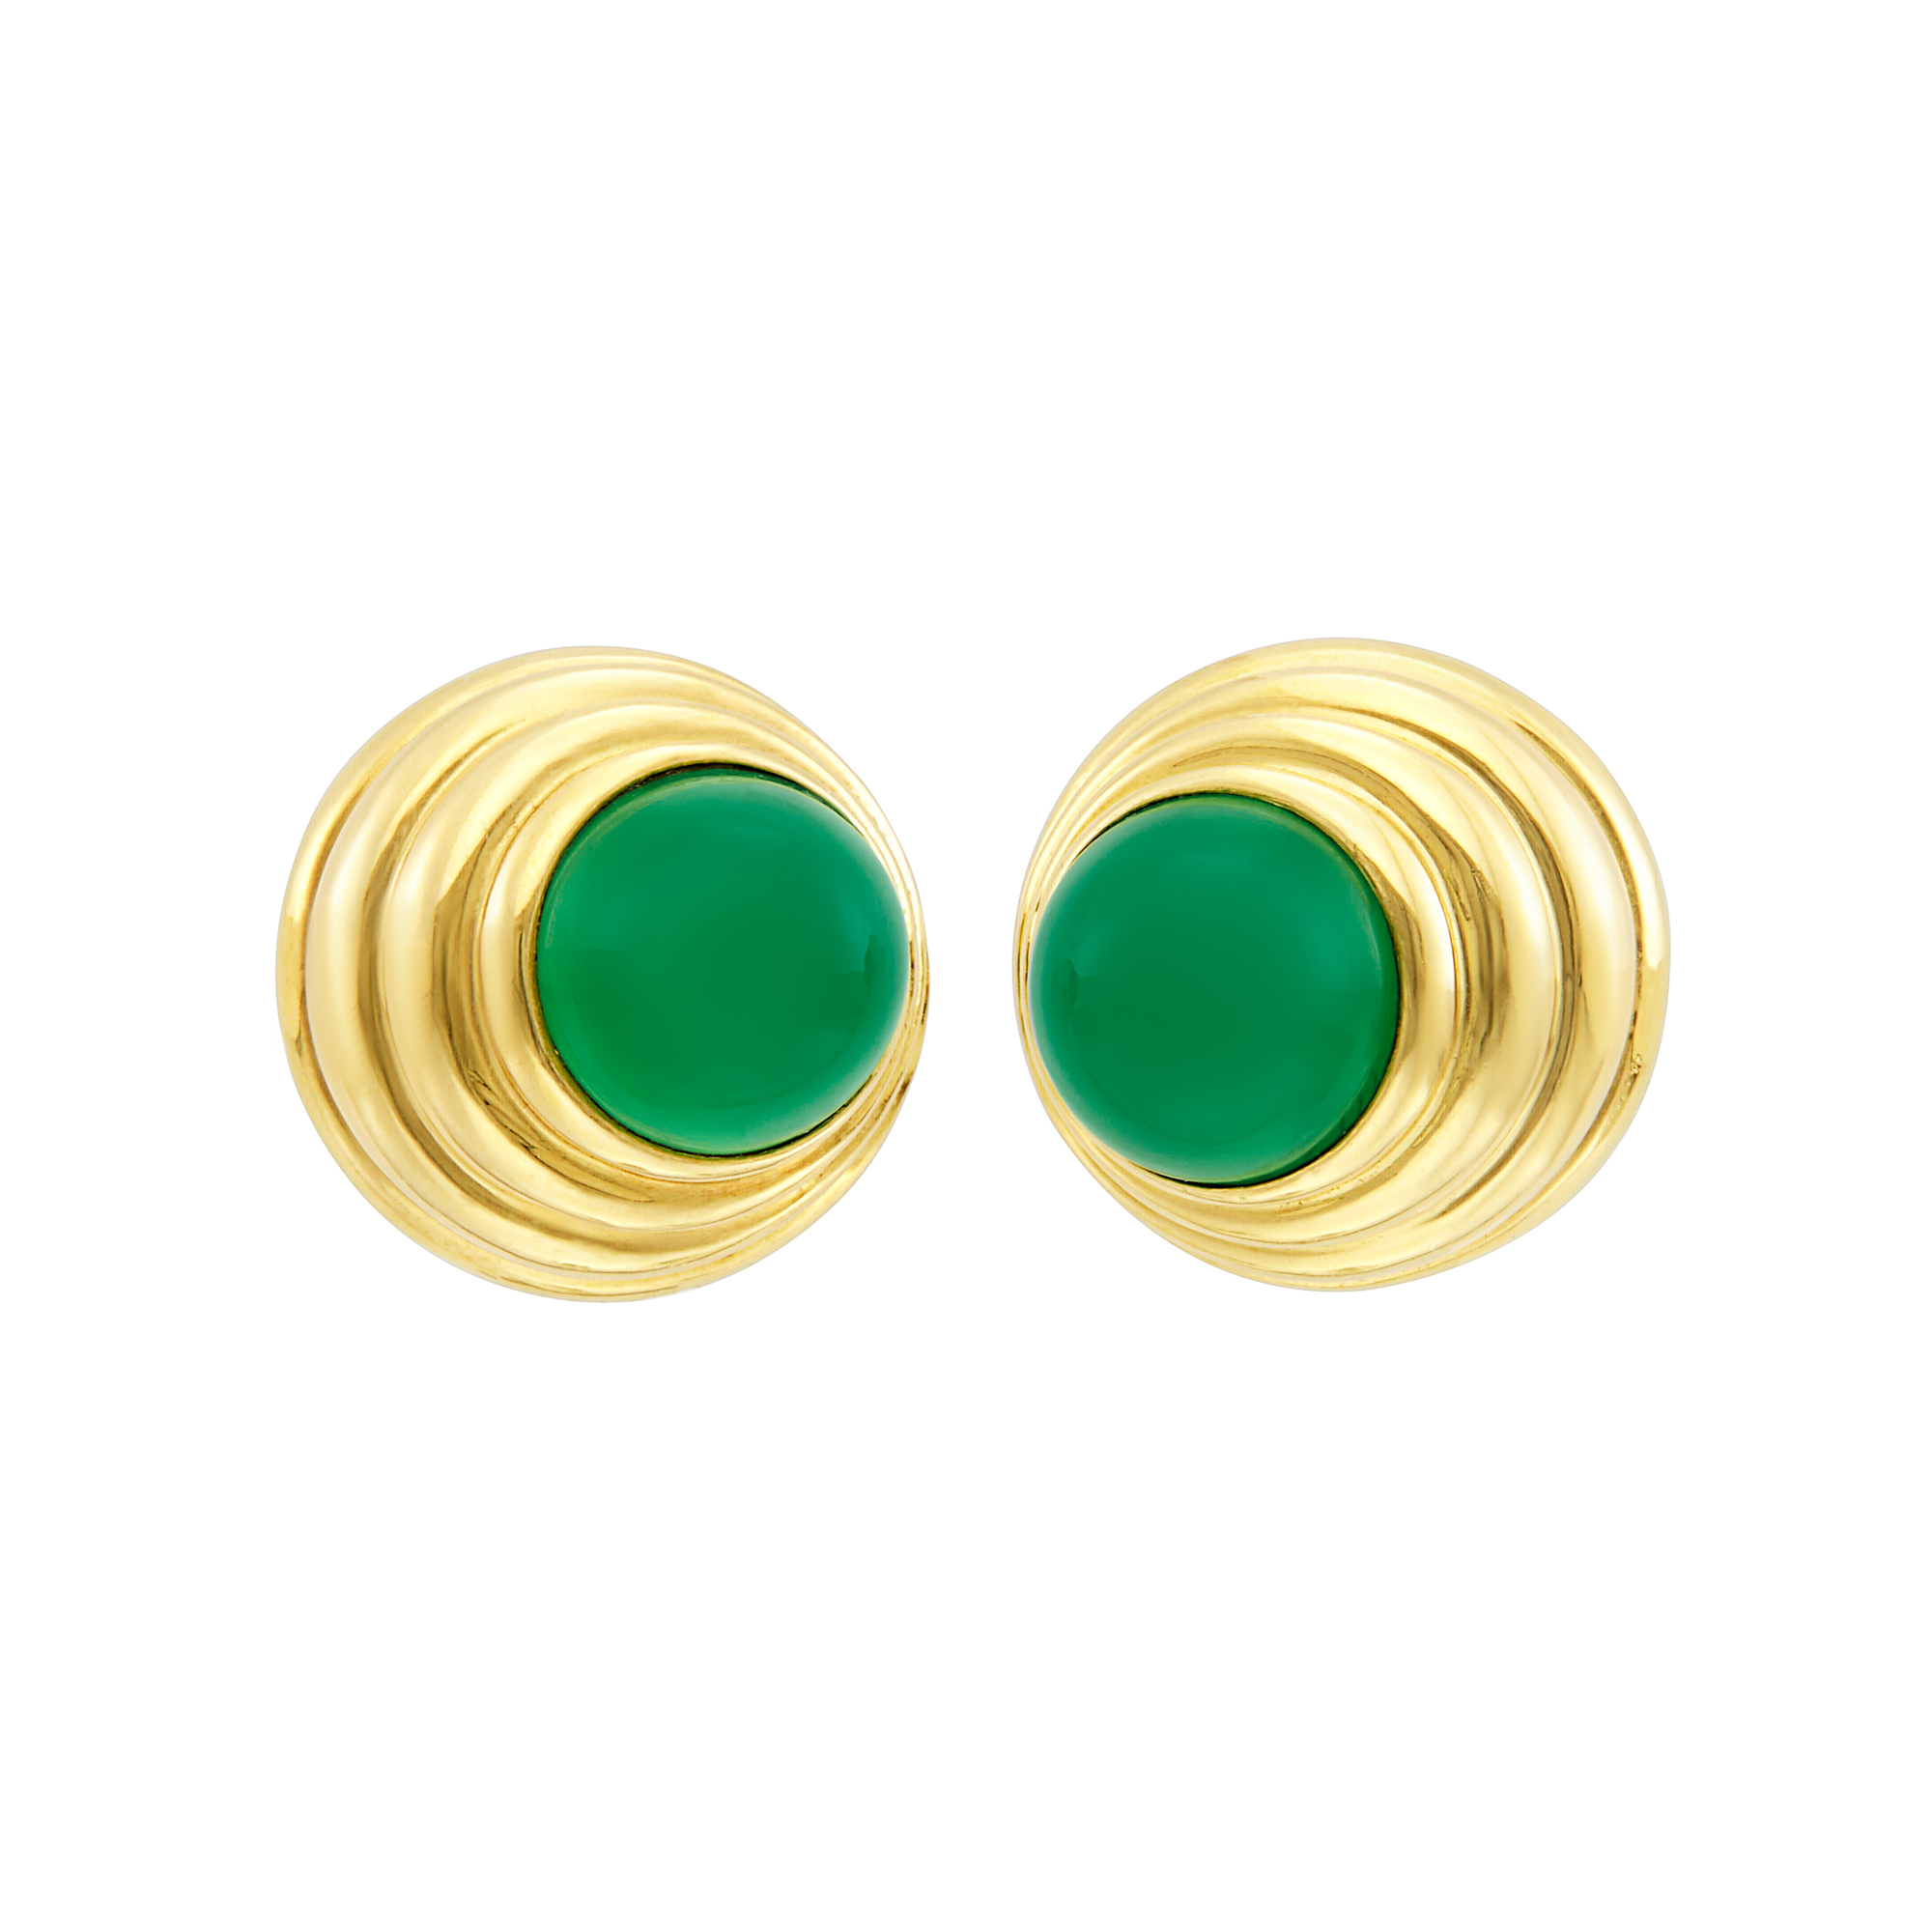 Lot image - Pair of Gold and Green Onyx Earclips, Van Cleef & Arpels